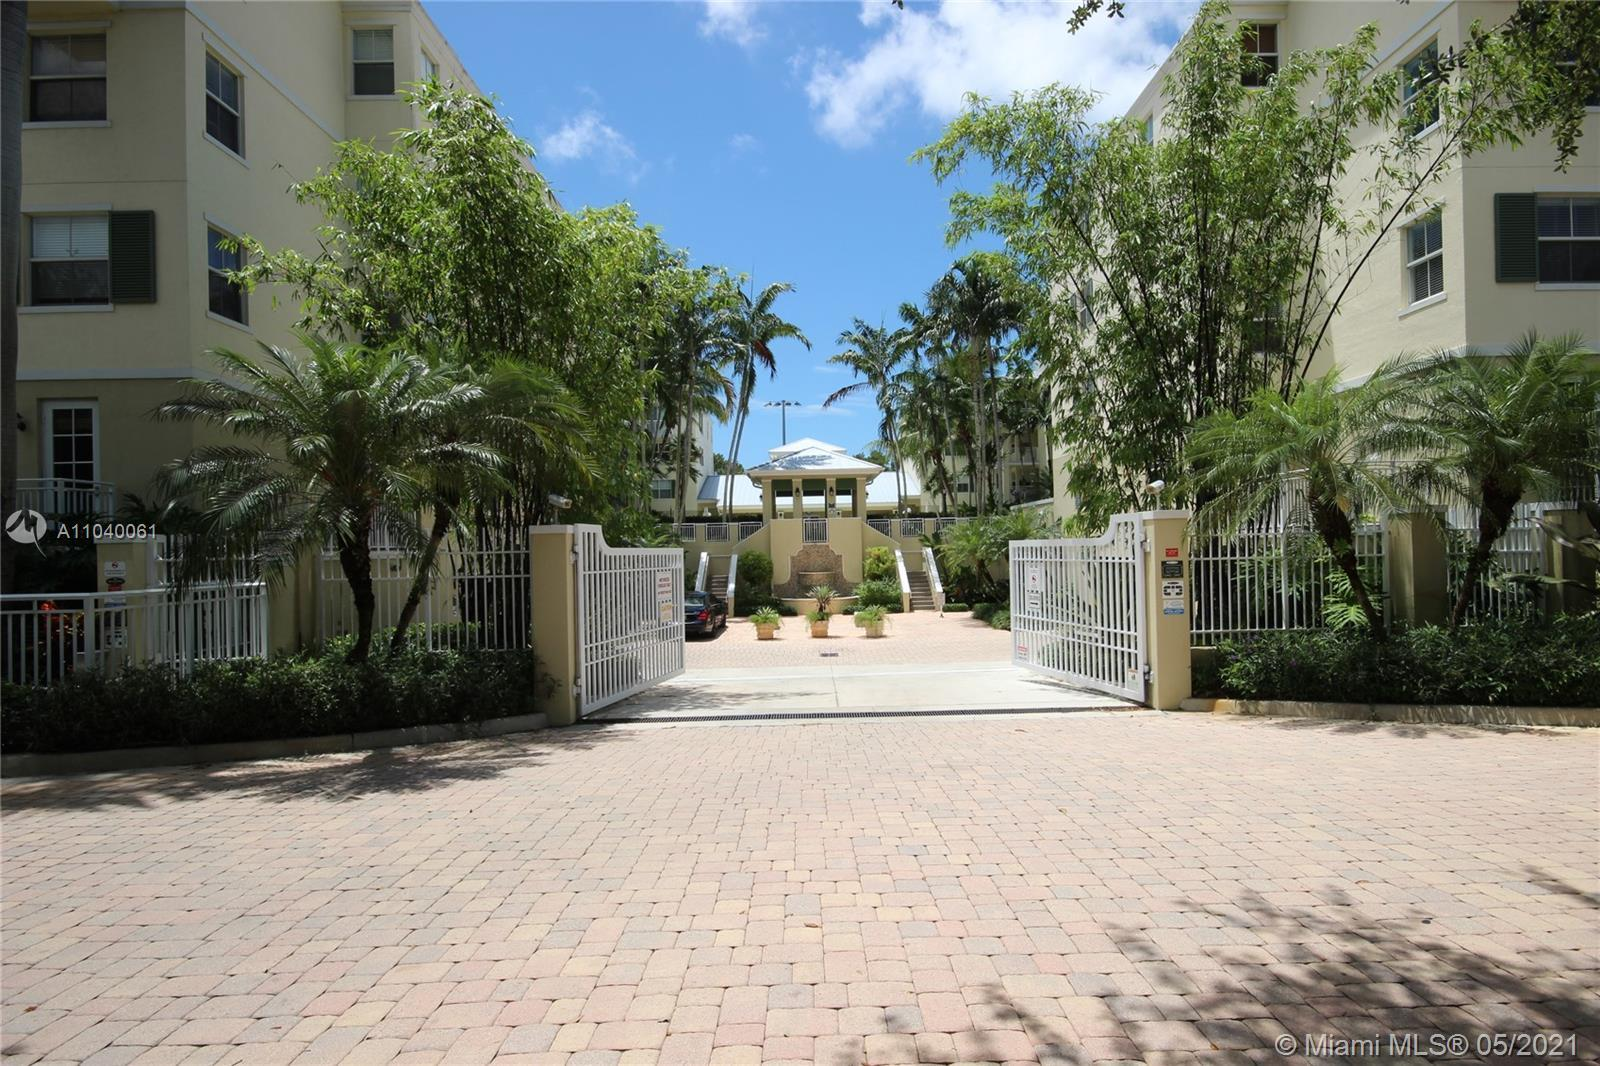 Ideally located one-story 3 bedroom 2.5 bathroom unit at The Reserve of Pinecrest.  All tiled floors